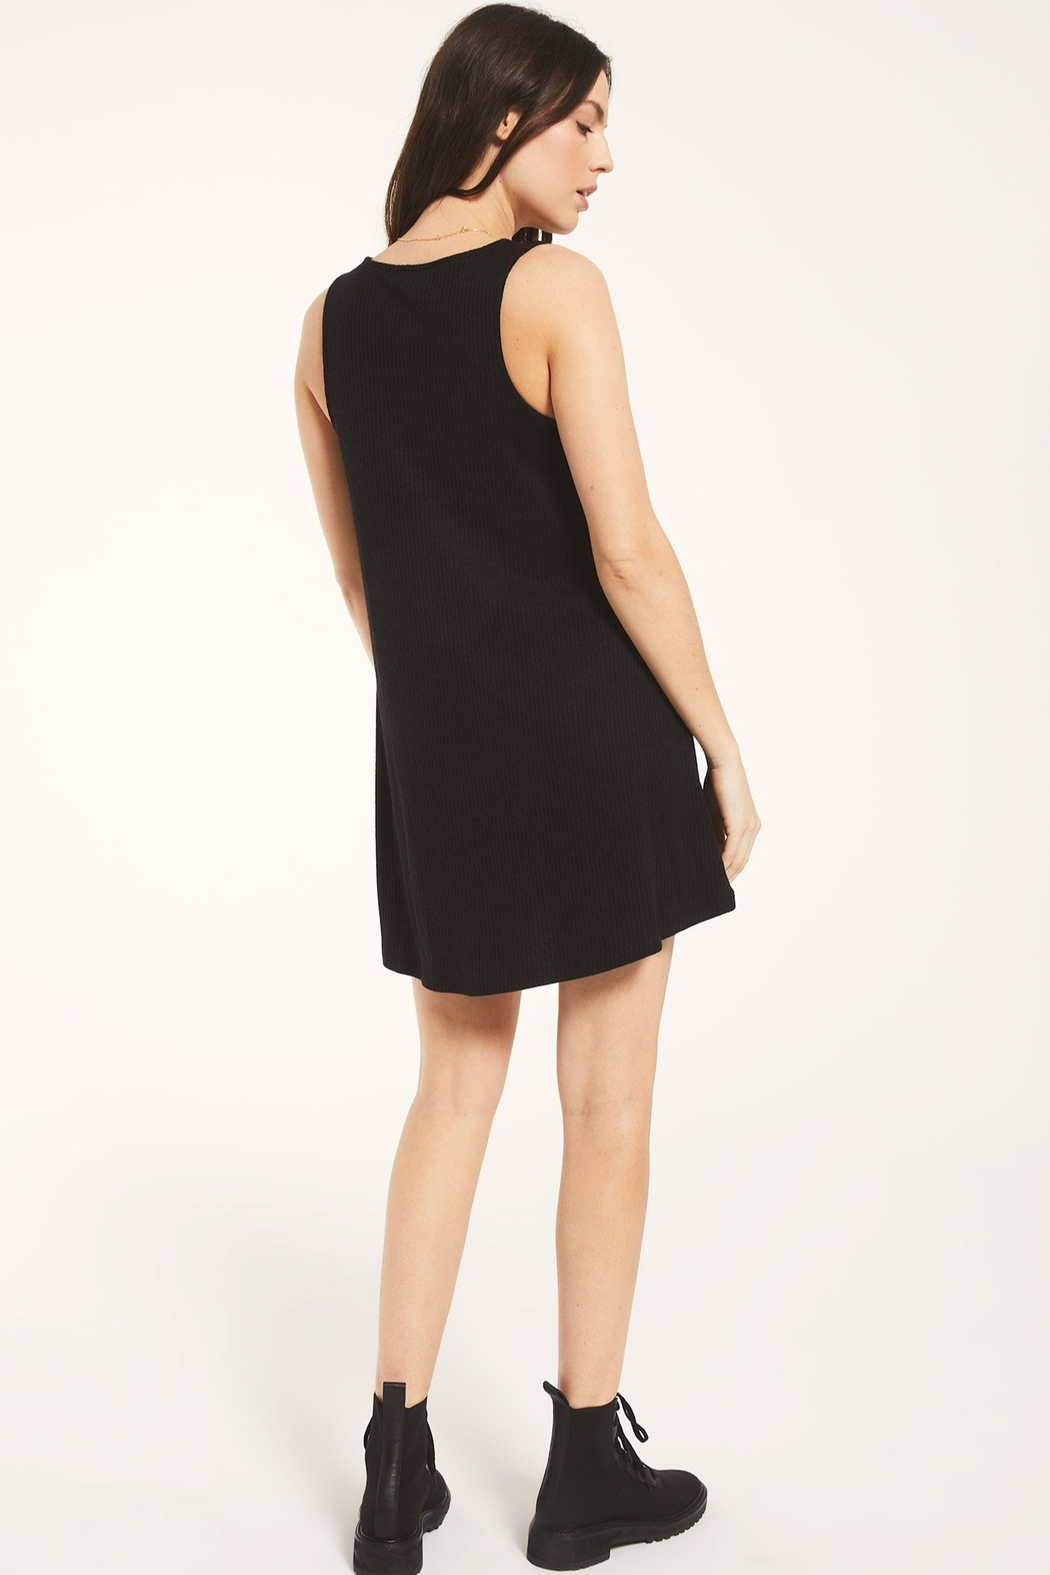 z supply Margo Rib Button Up Dress - Side Cropped Image